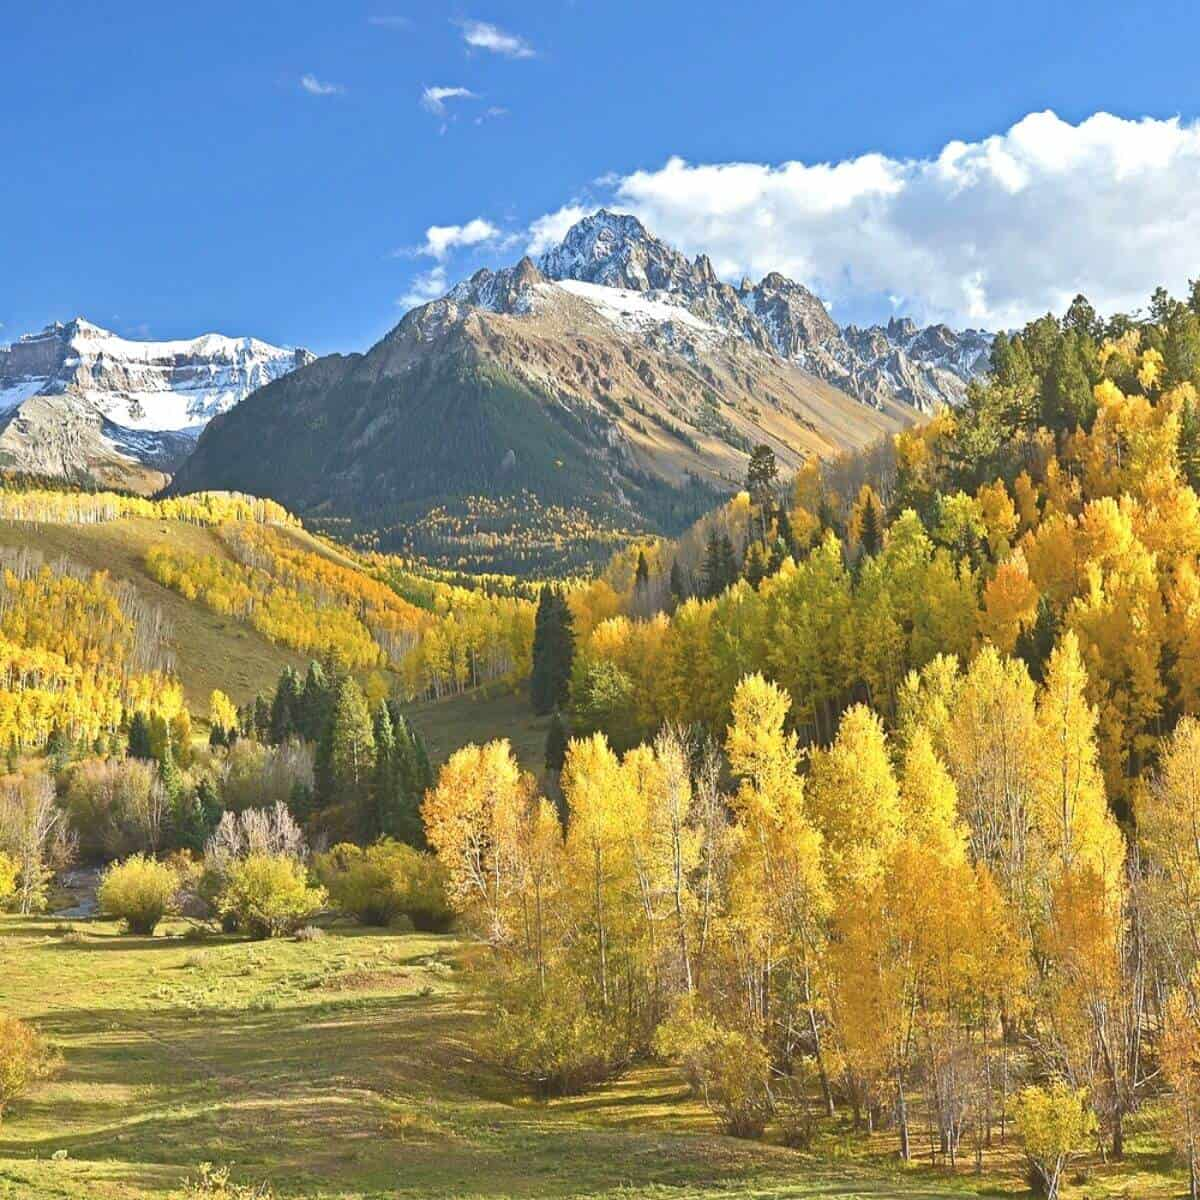 Mountains and trees in Colorado during the fall.